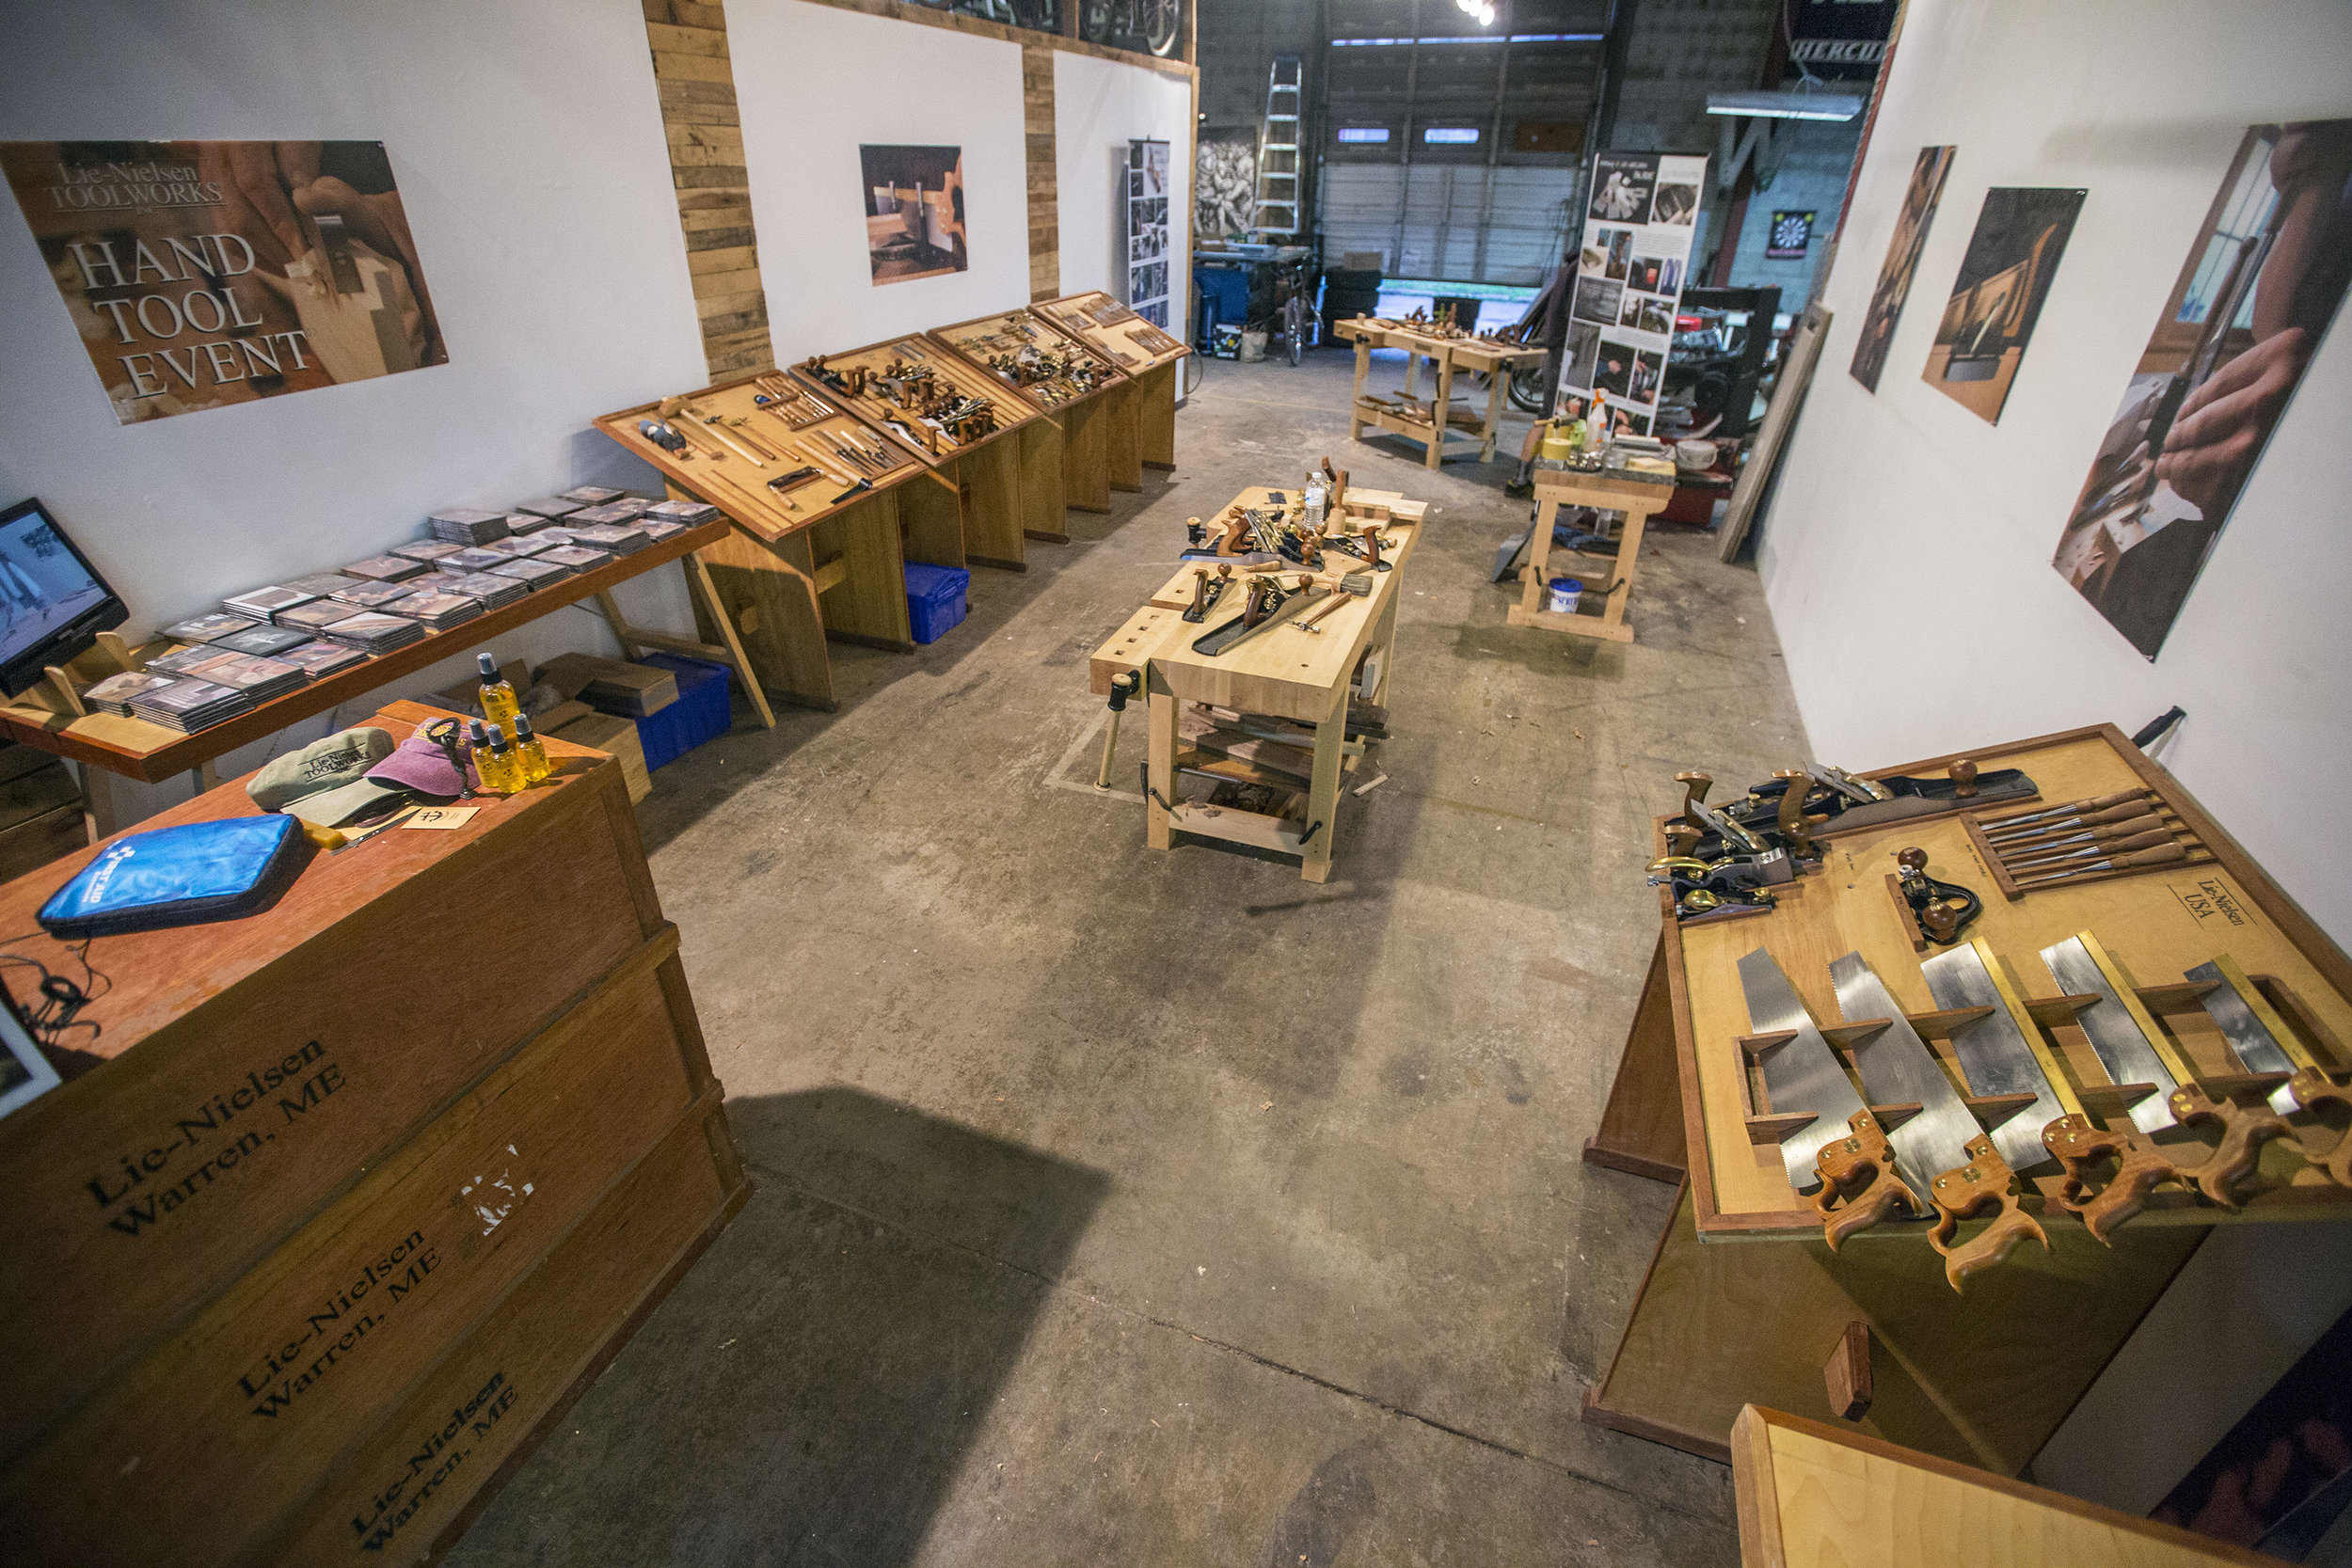 Lie-Nielsen Hand Tool Event at the Great Lakes Woodworking Festival in Michigan